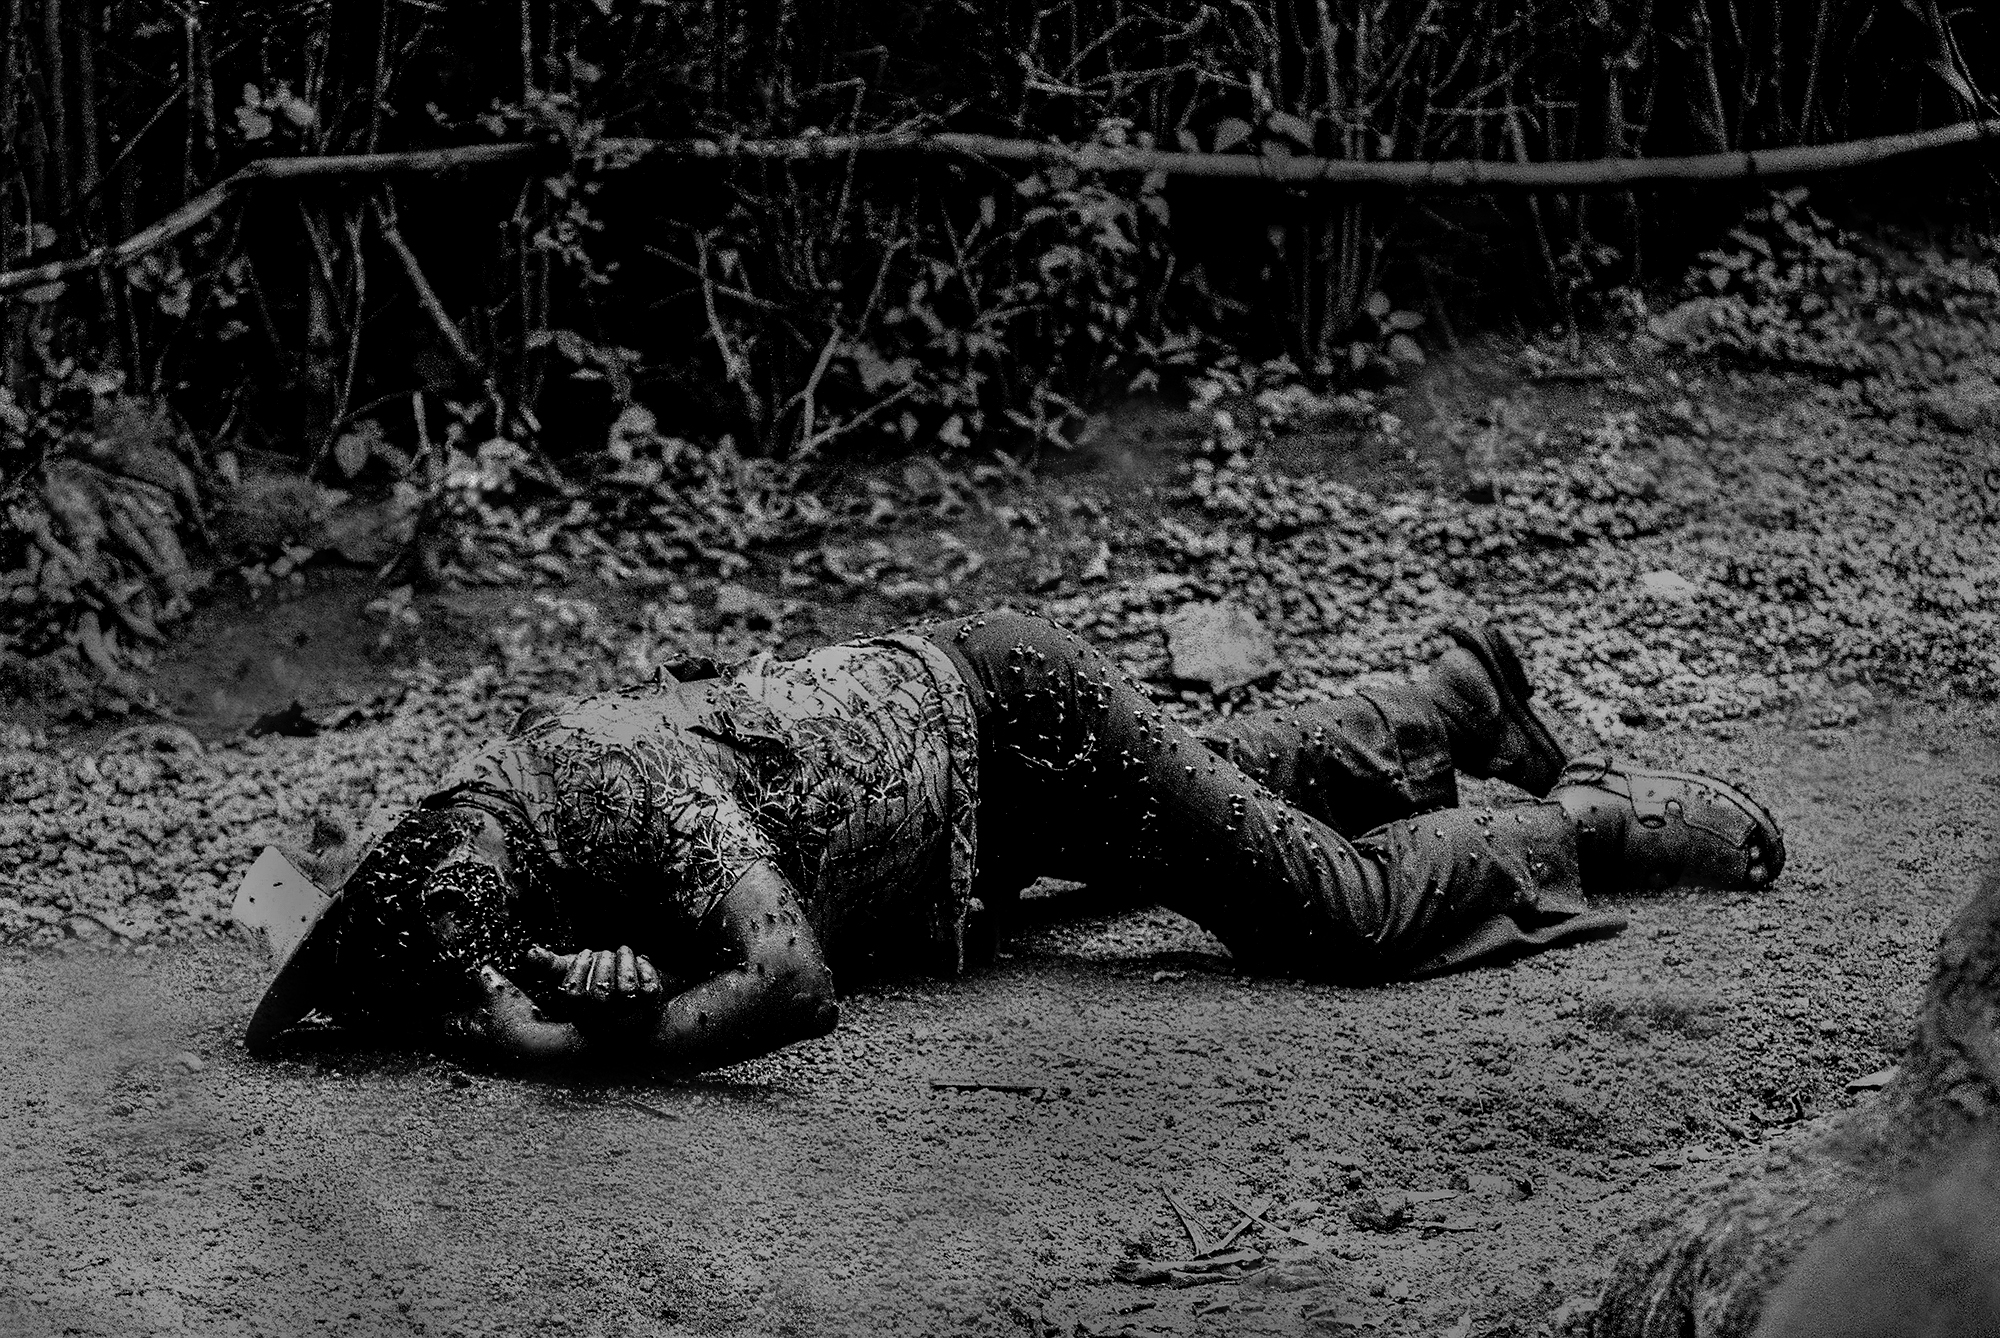 A Tutsi man felled in the front garden of his home. Many victims like this man appeared like still photographs - frozen in time -and peppered over the Rwandan landscape.